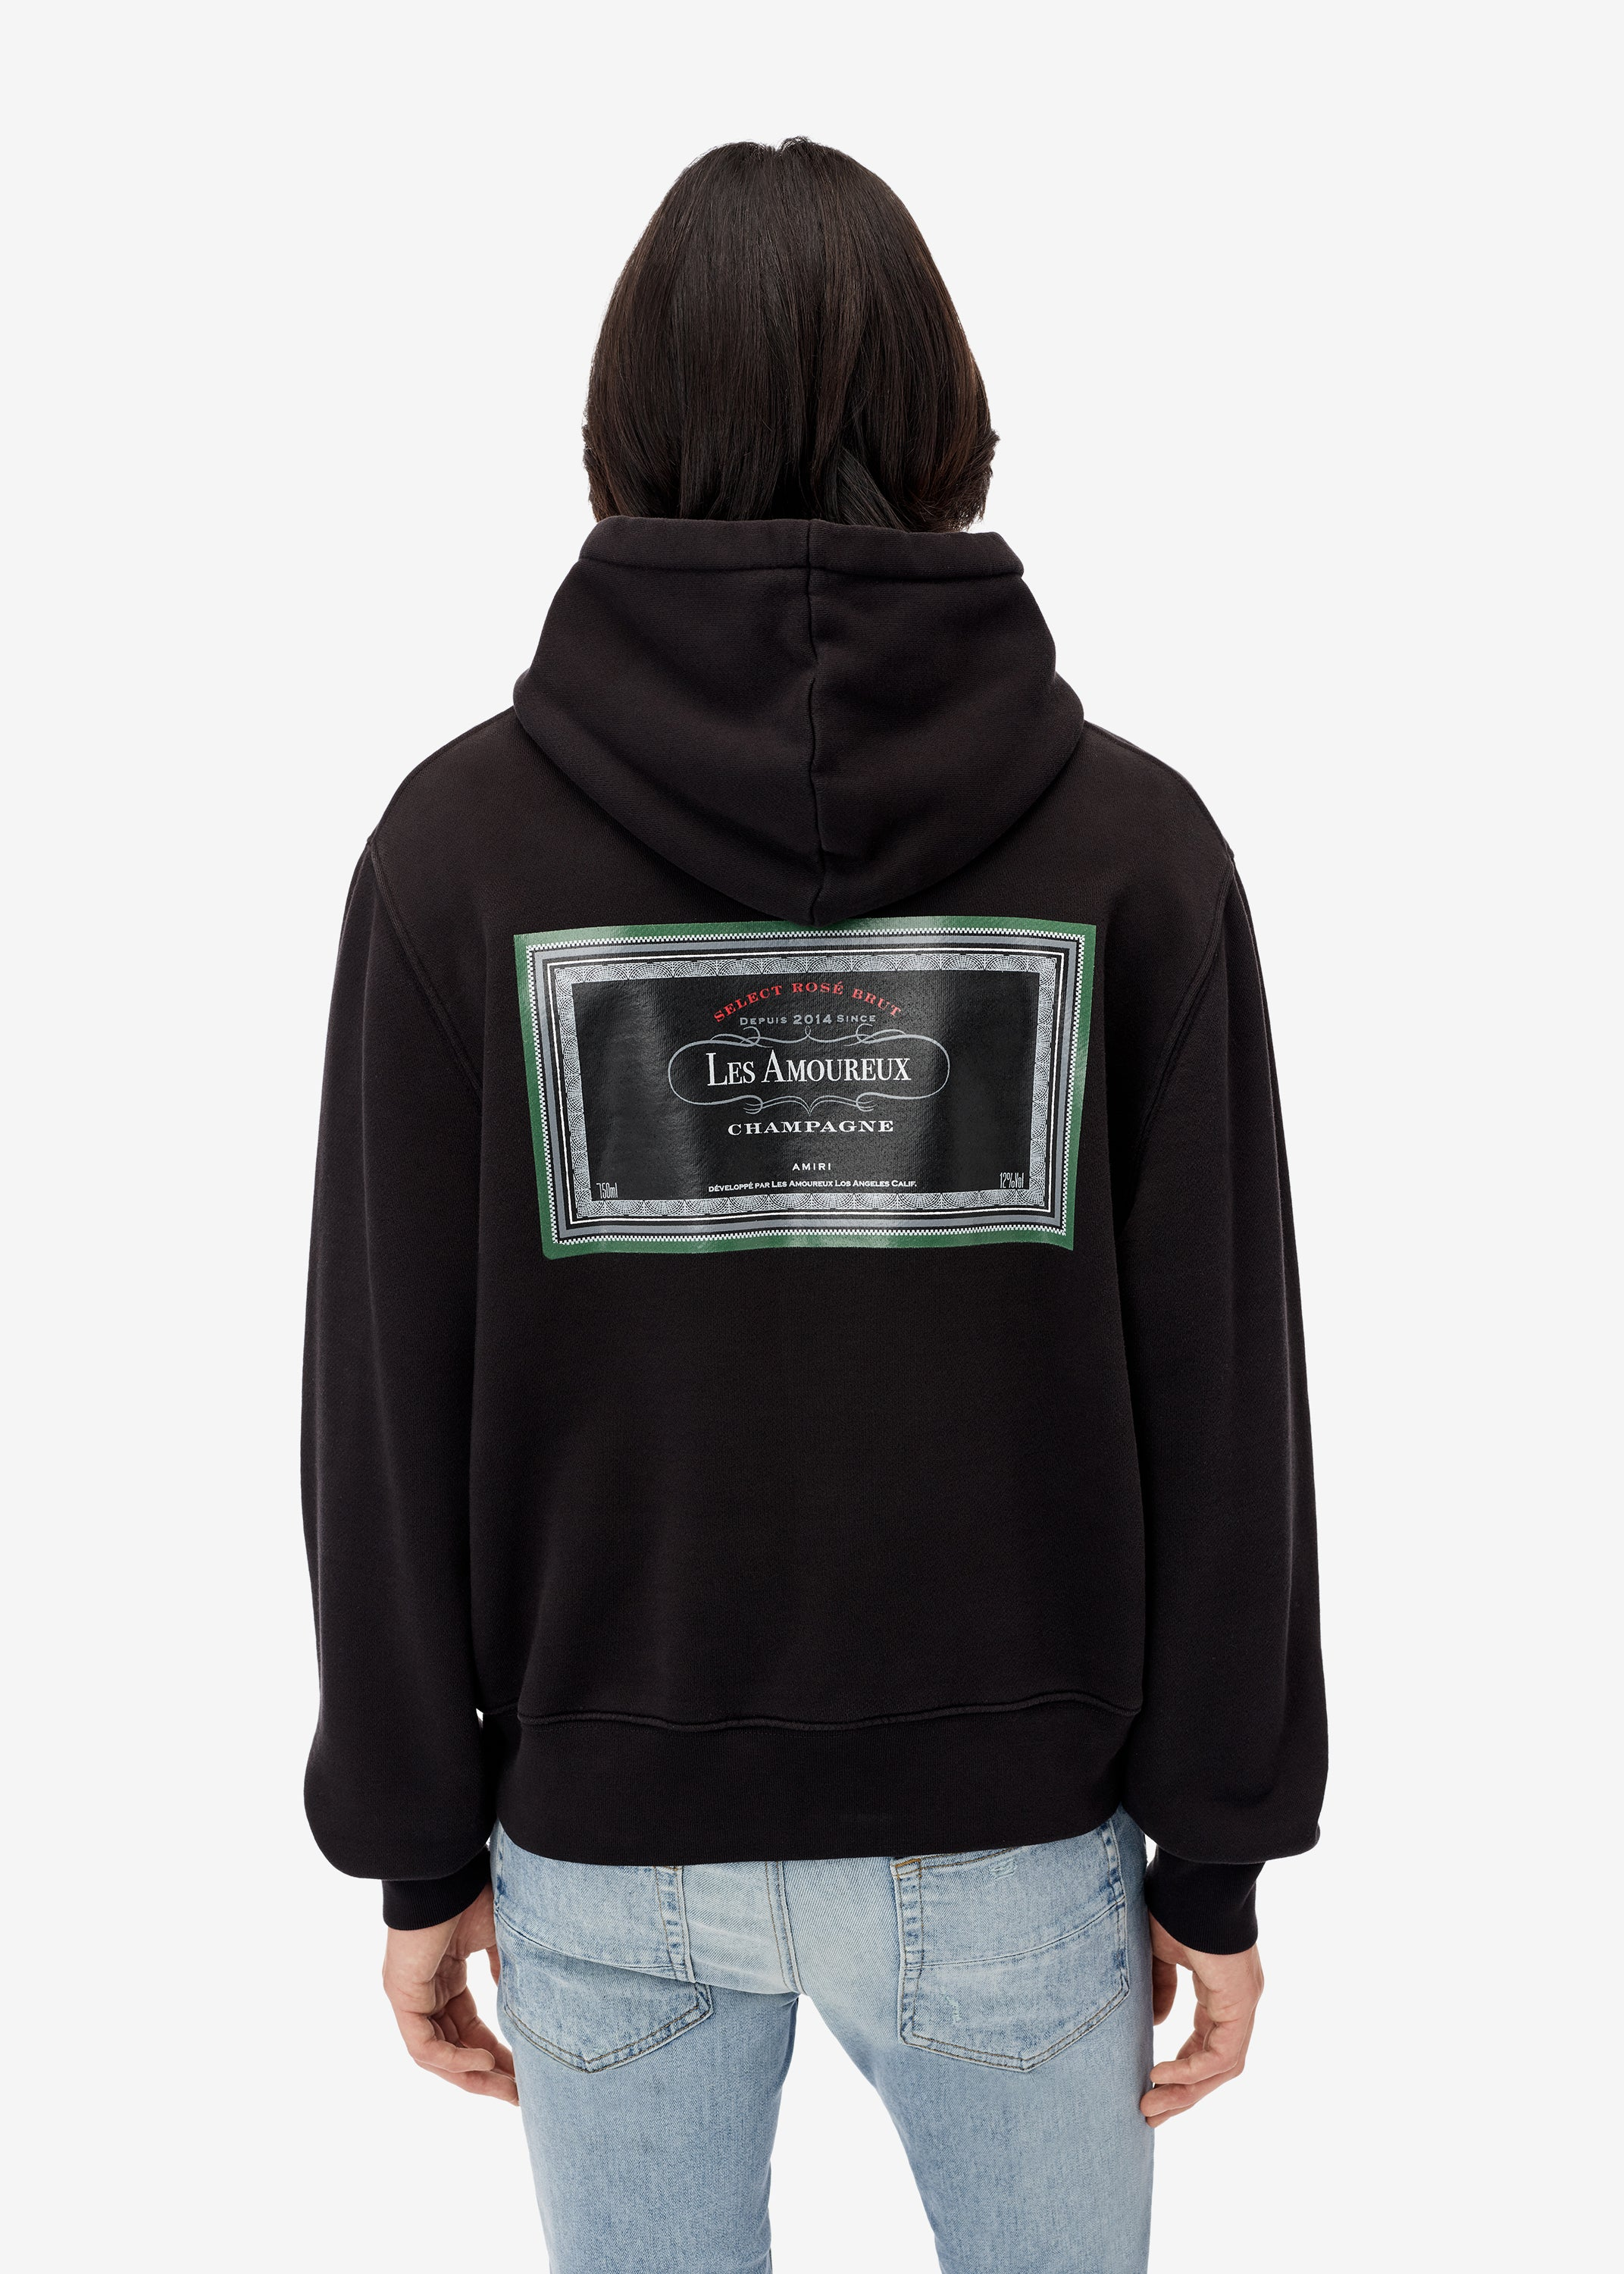 les-amoureux-gel-label-hoodie-web-exclusive-black-image-3